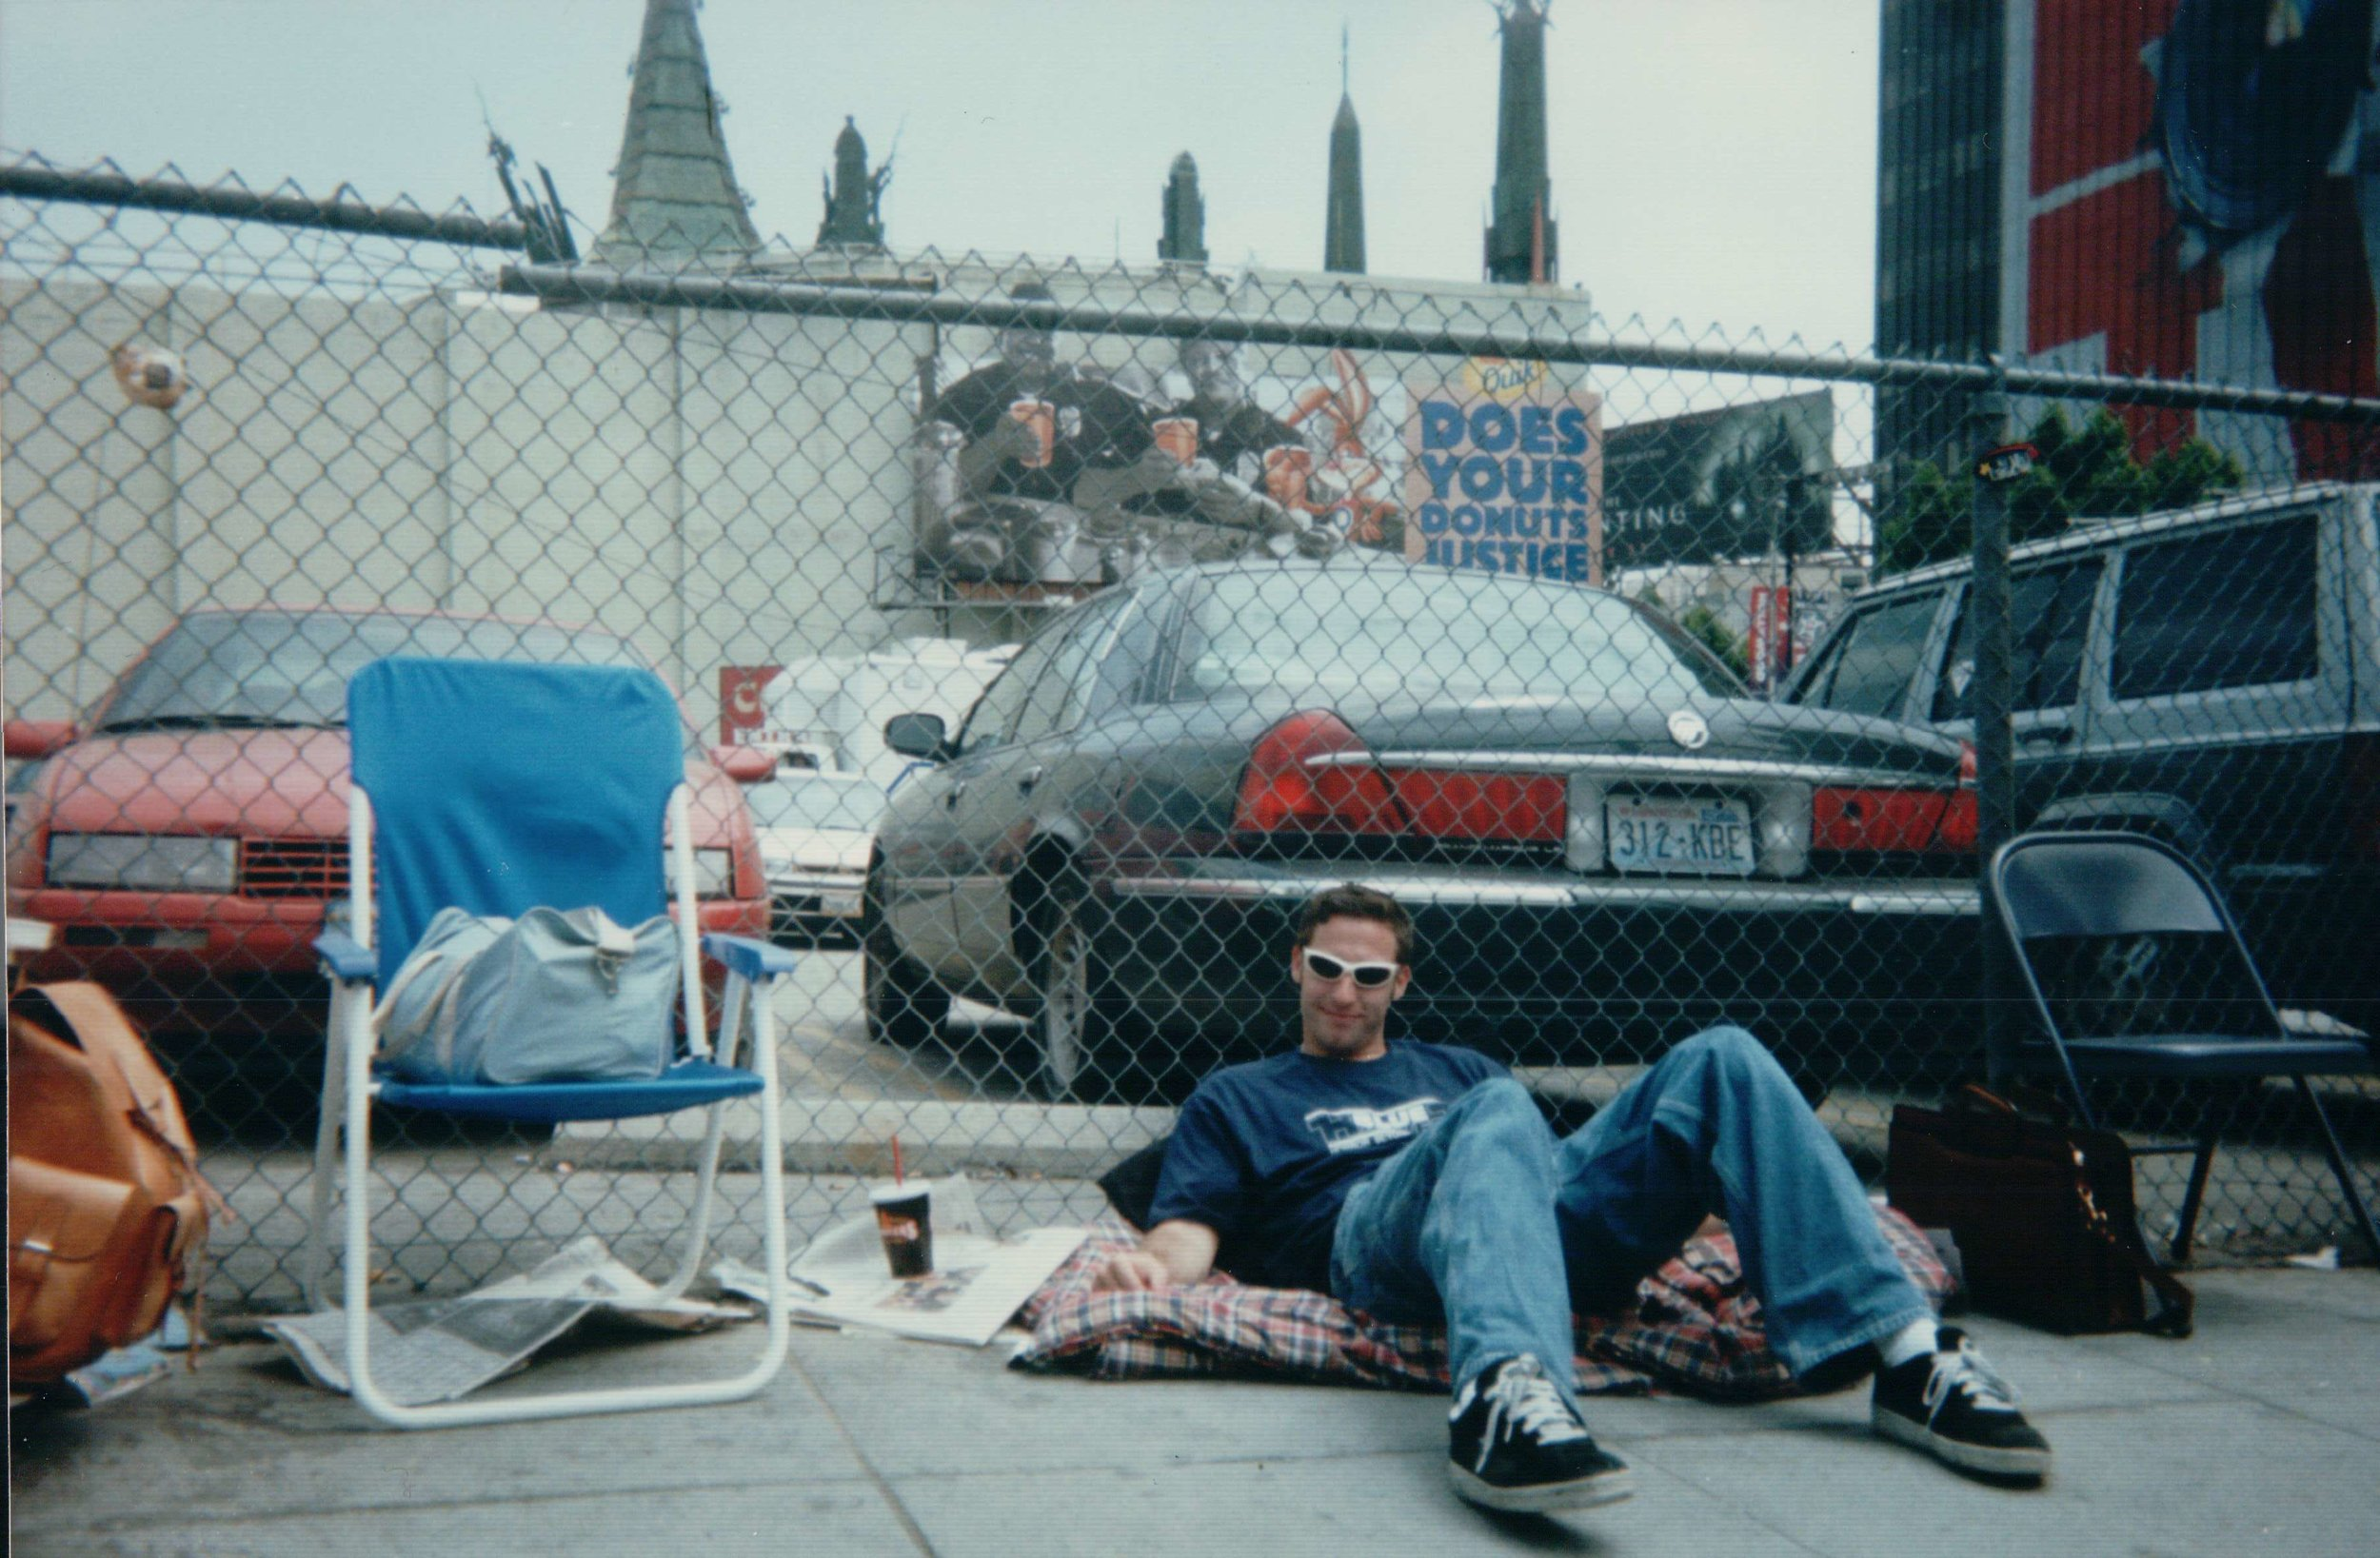 Brennan Swain waits in line at Grauman's Chinese Theatre in Hollywood on opening day - May 19th, 1999.